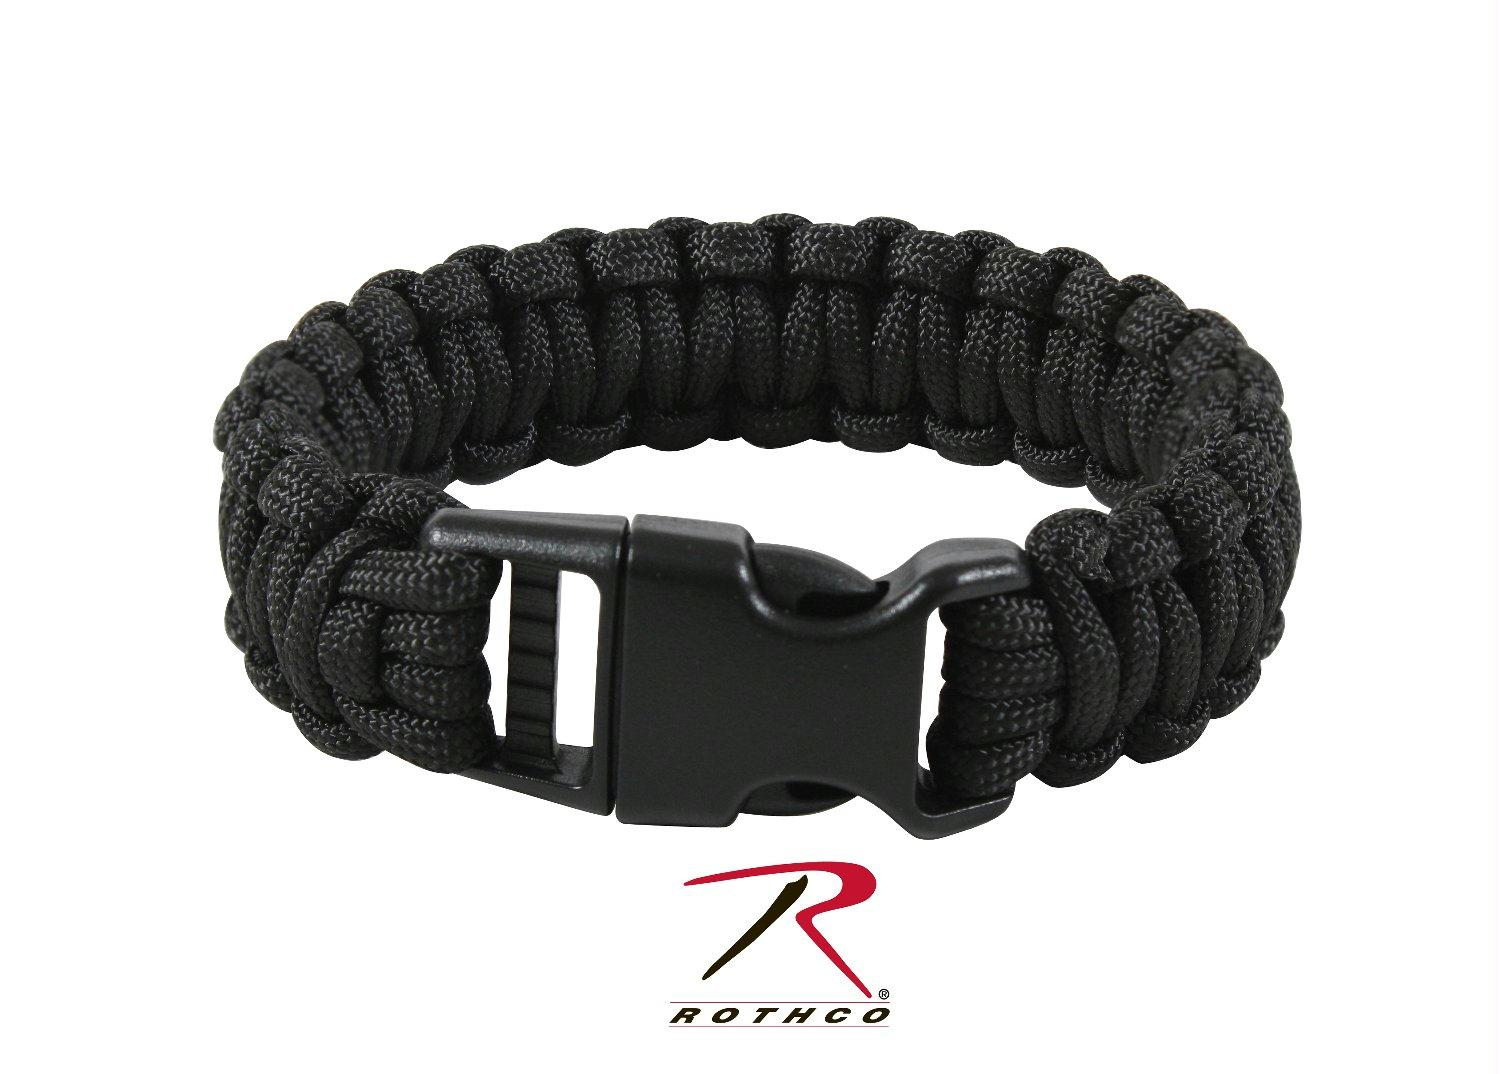 Rothco Deluxe Paracord Bracelets - Black / 9 Inches